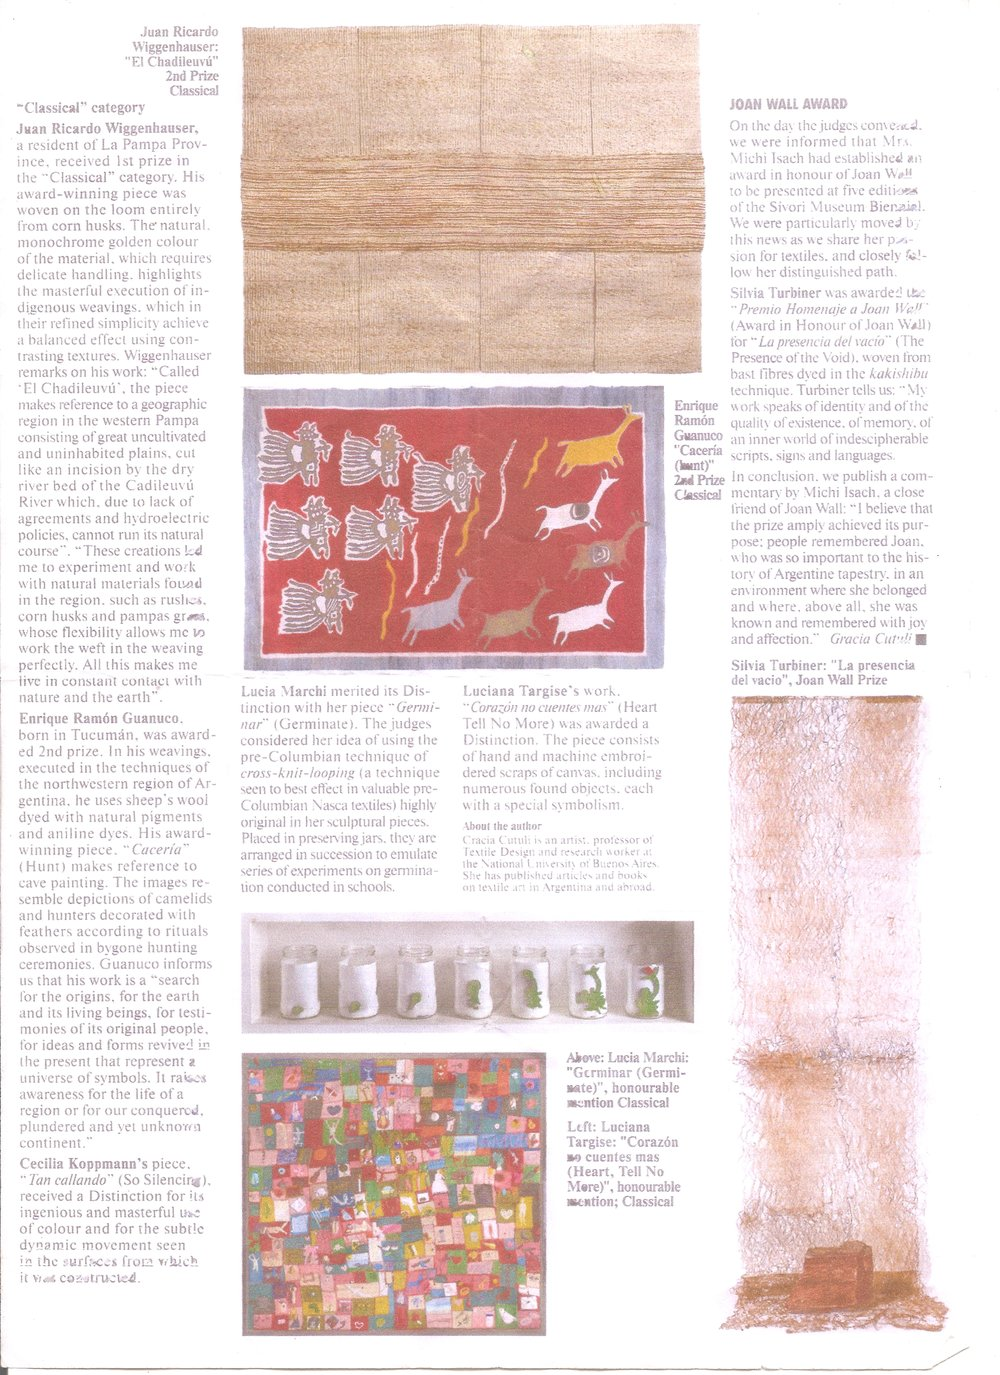 Textile Forum article by Grazia Cuttuli.  Joan Wall Award, 2011